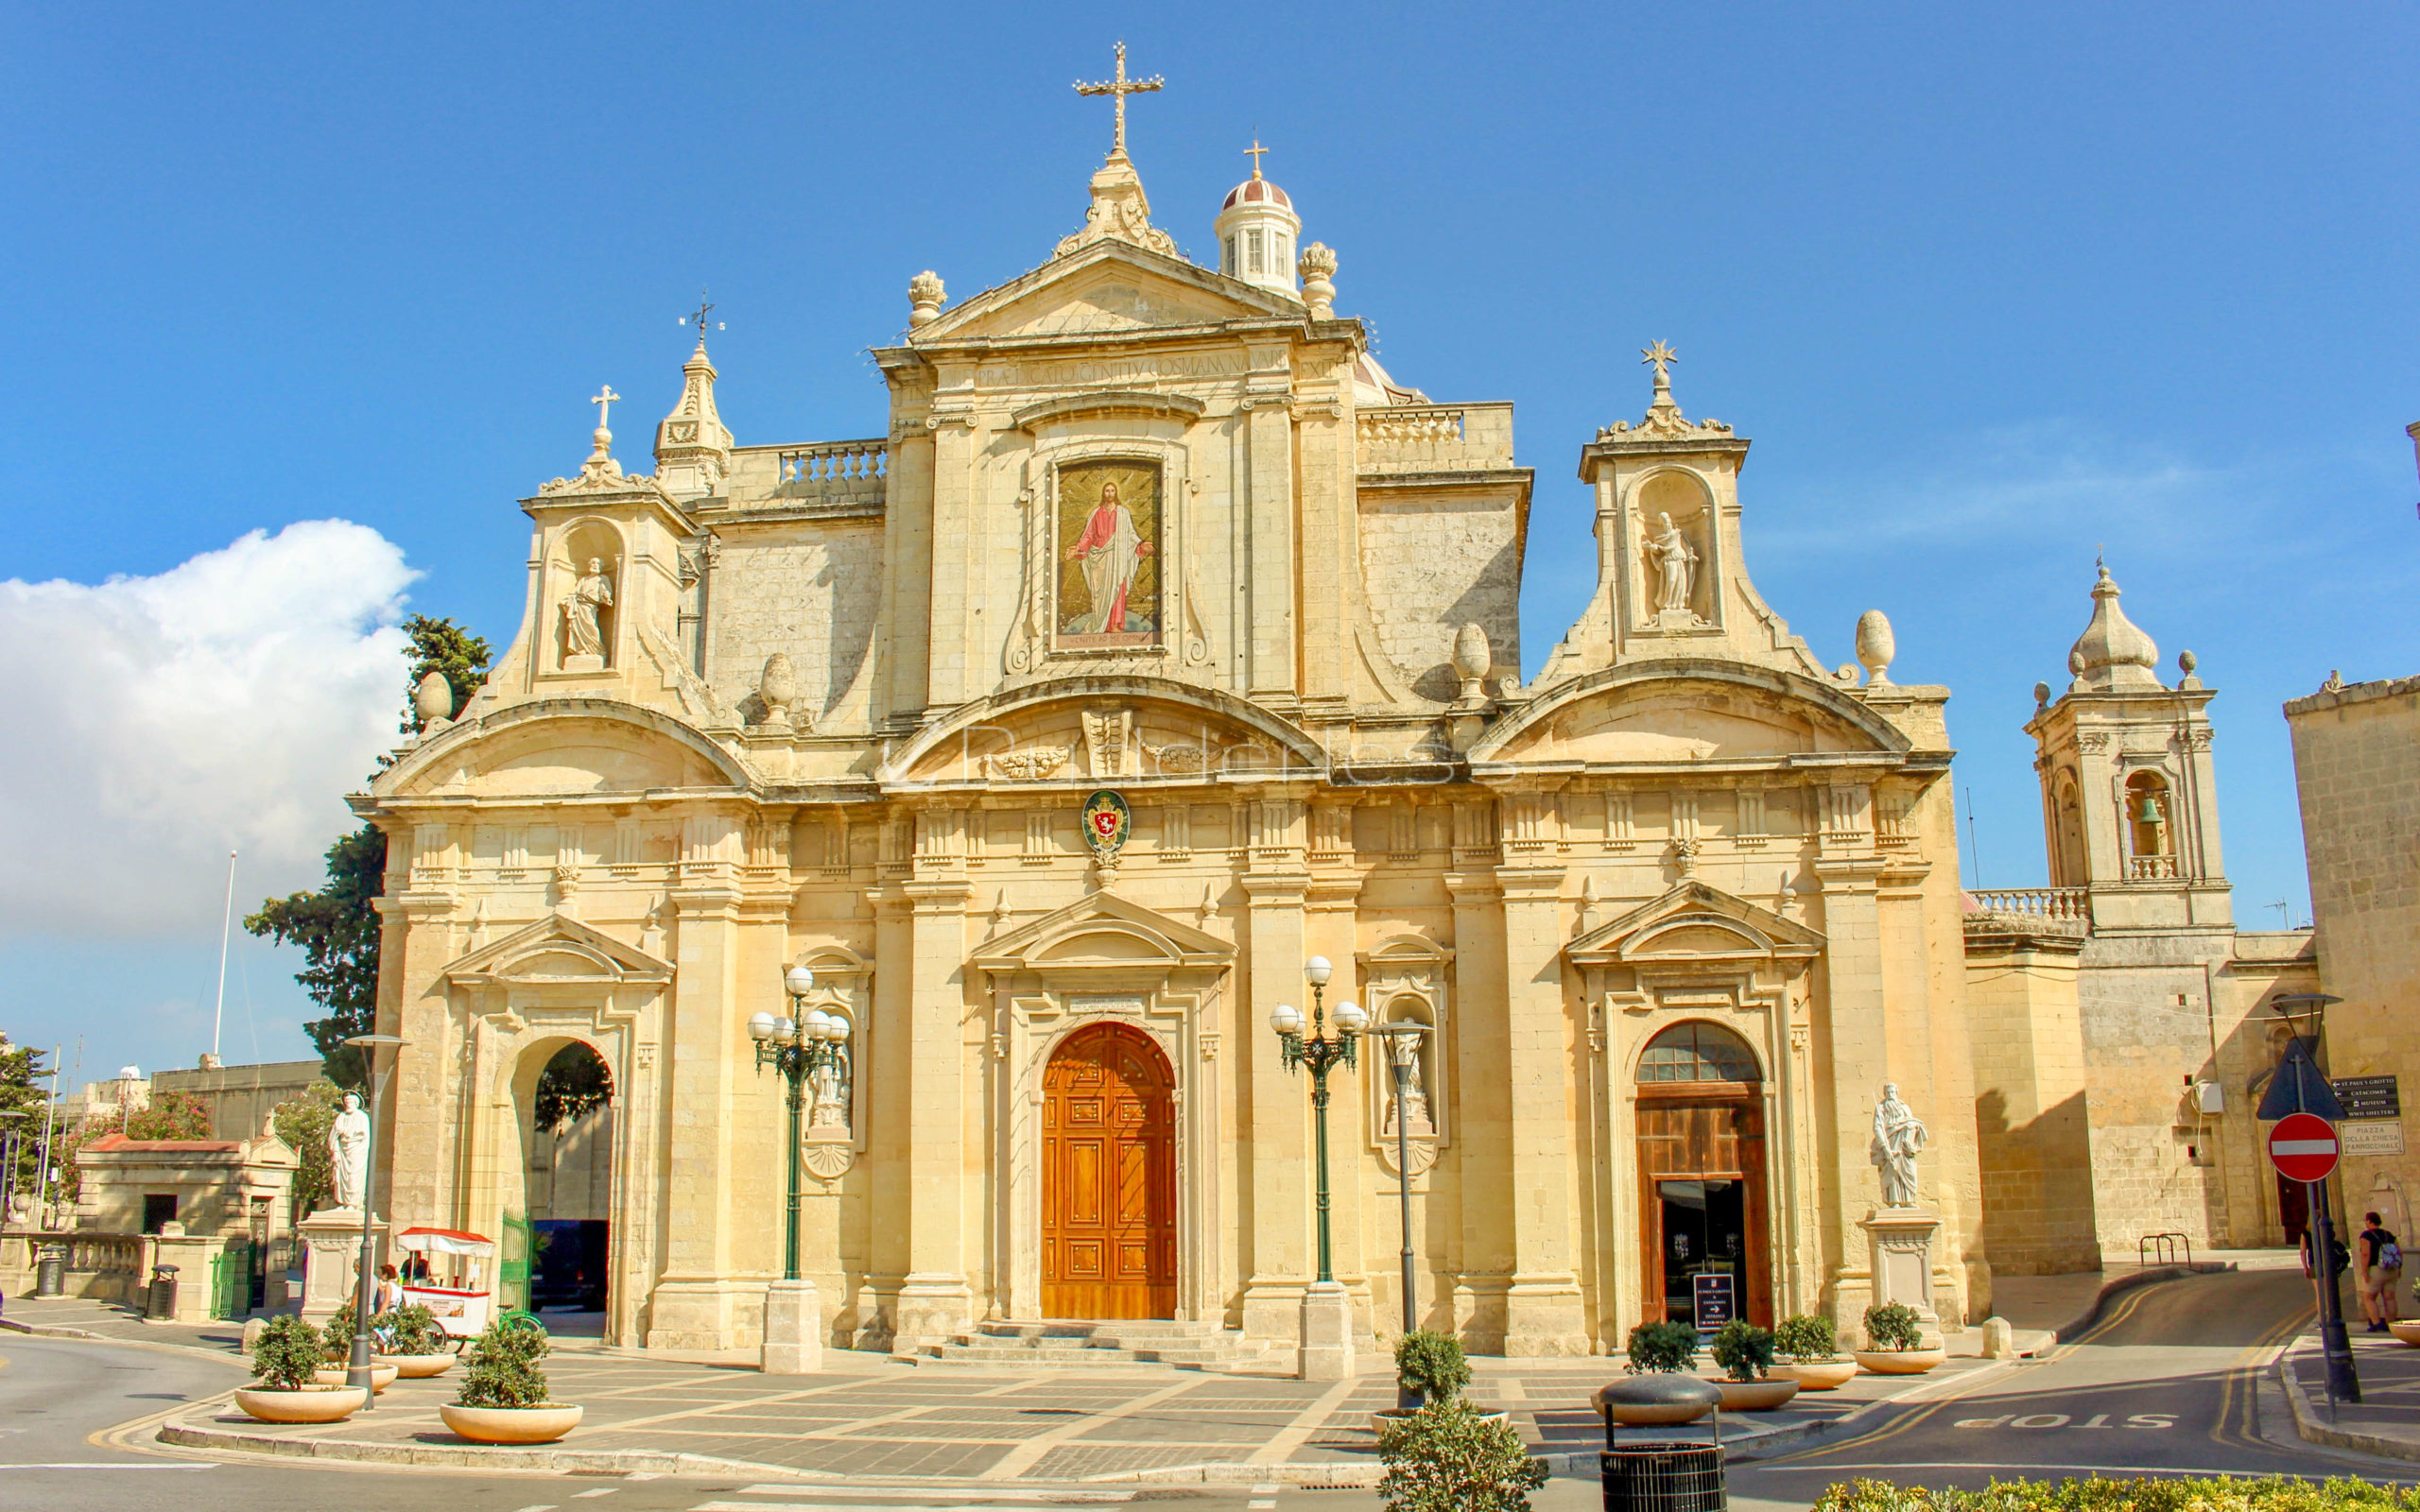 places to see in malta - St. Paul's